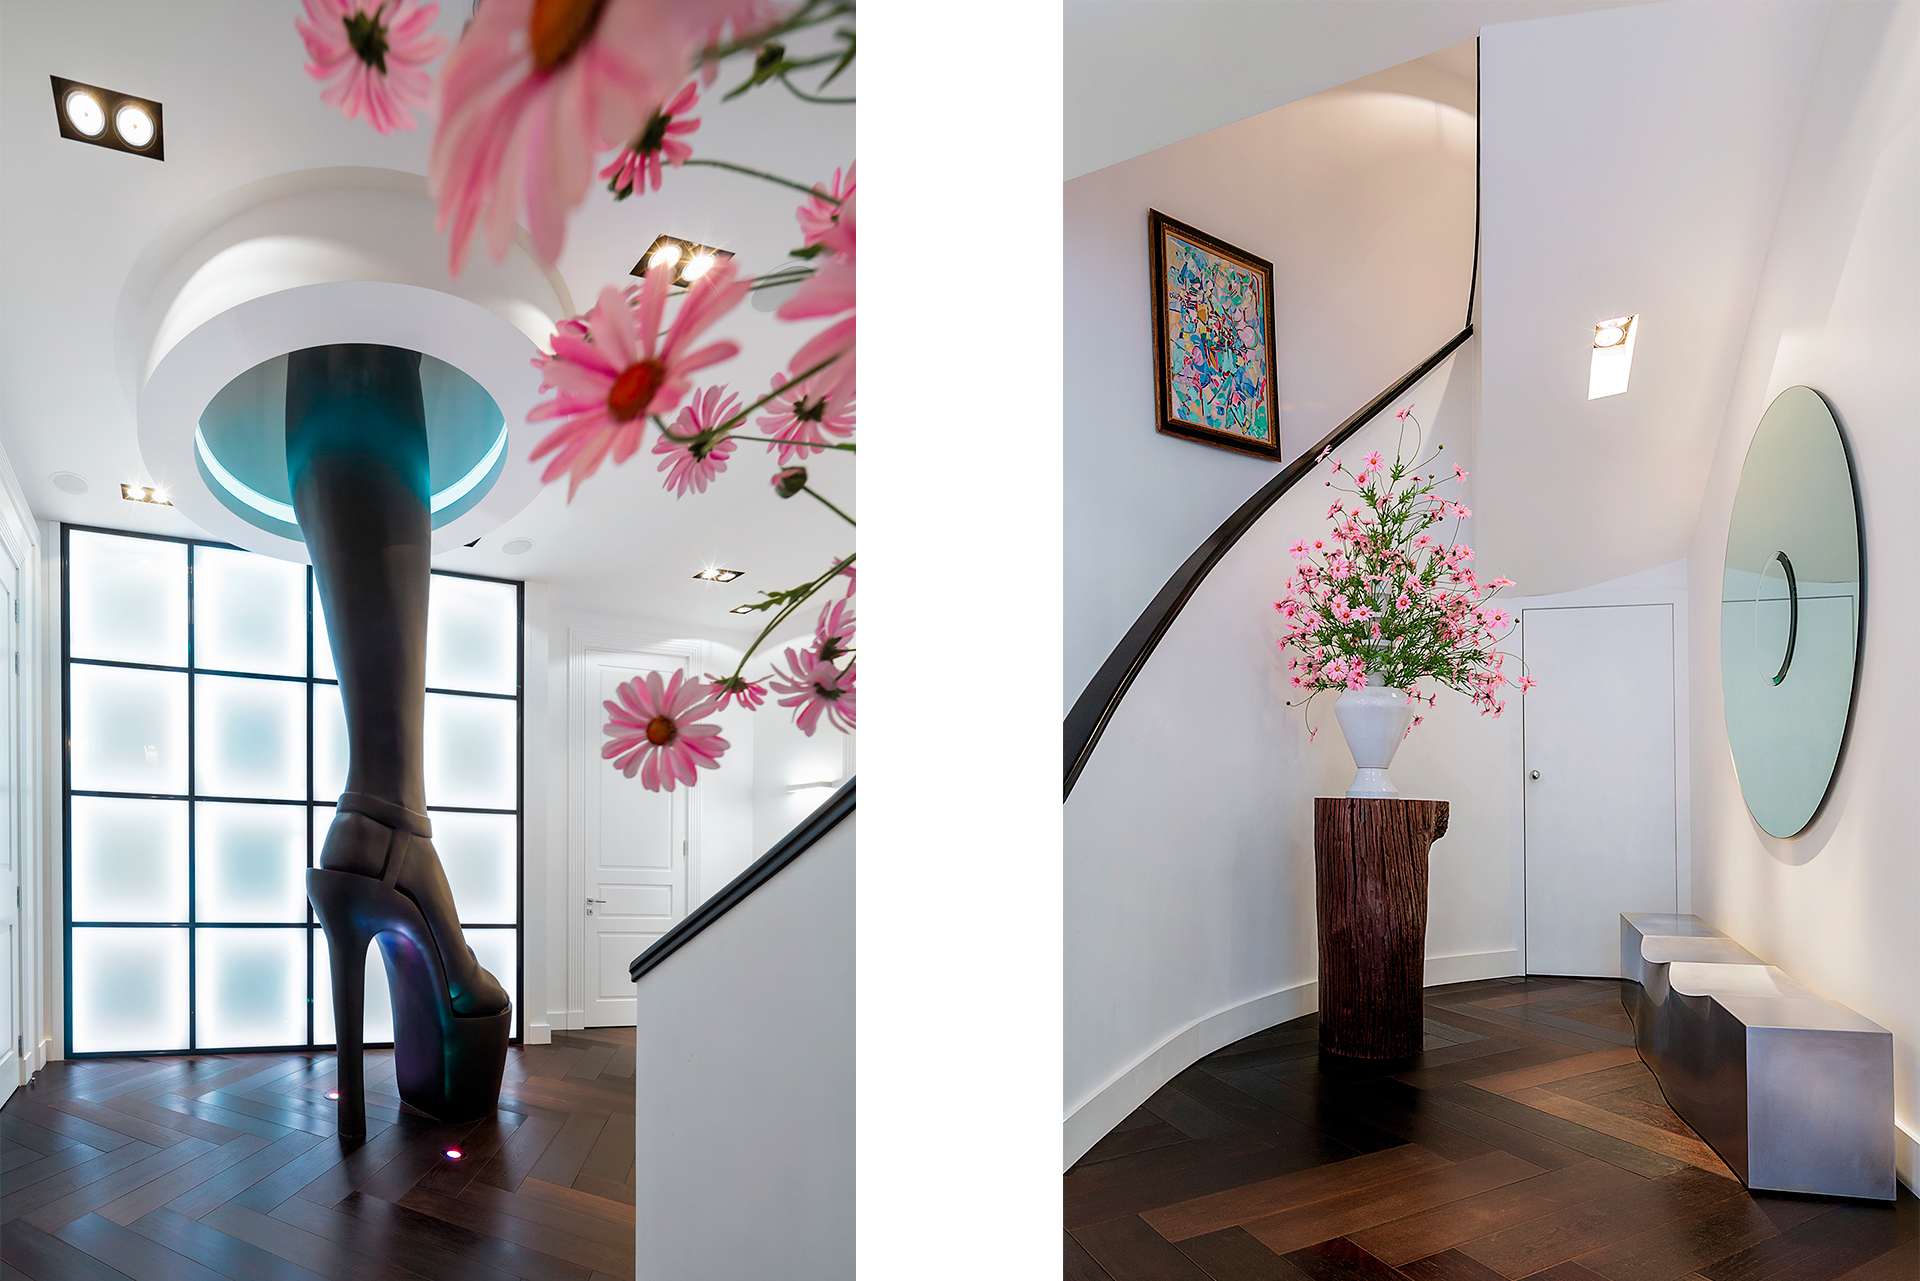 Hallway and leg sculpture with flowers